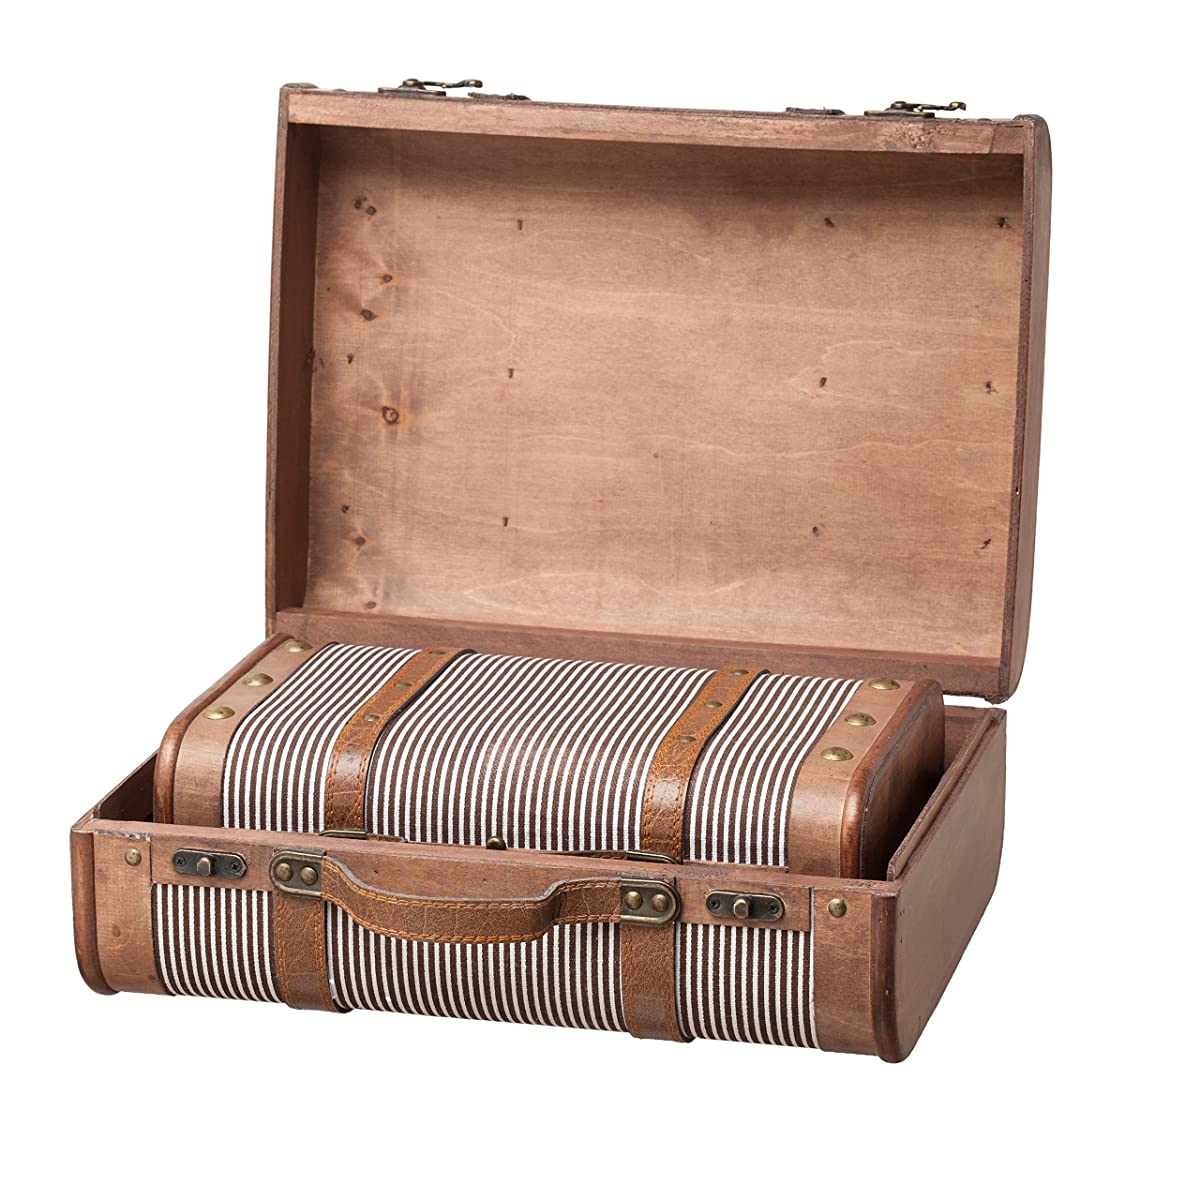 Vintage Decorative Suitcases Slpr Decorative Suitcase With Straps Set Of 2 Striped